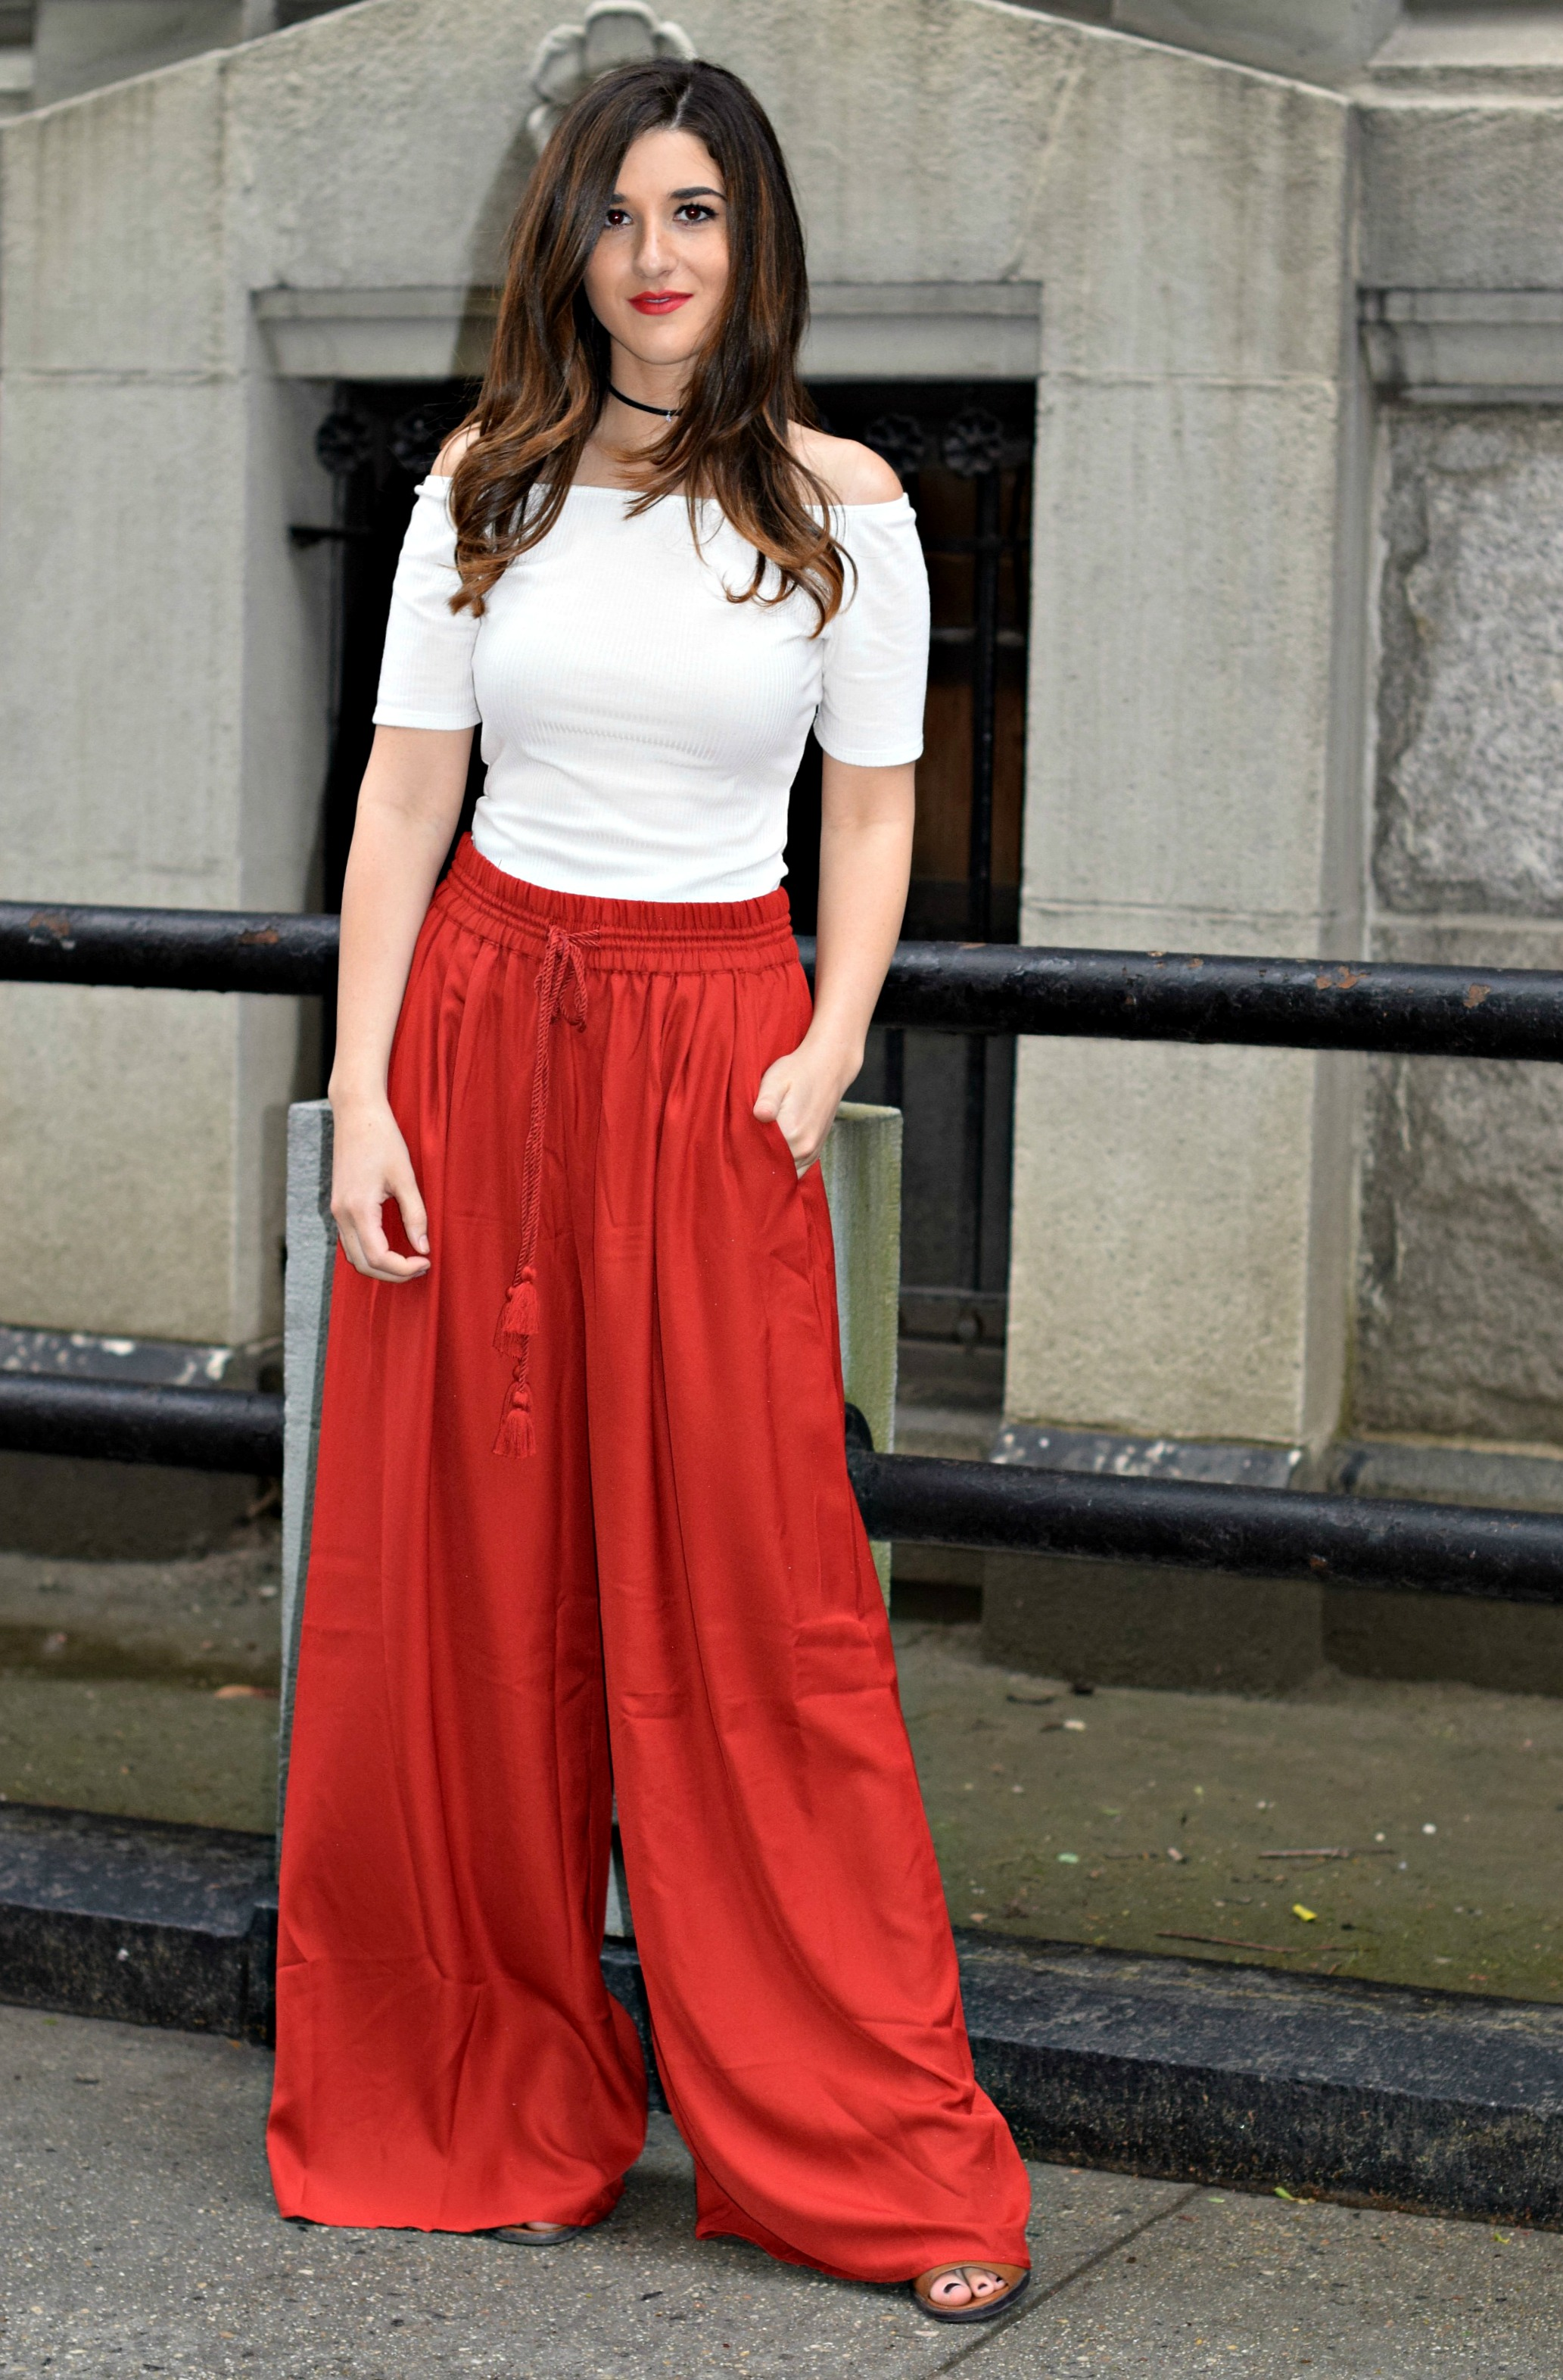 New Haircut Red Palazzo Pants Louboutins & Love Fashion Blog Esther Santer NYC Street Style Blogger Outfit OOTD Colorful Choker ELAHN Jewels Jewelry Cold Shoulder White Top Girl Women Pretty Shop New York City Model Hair Inspo Spring Summer Photoshoot.jpg